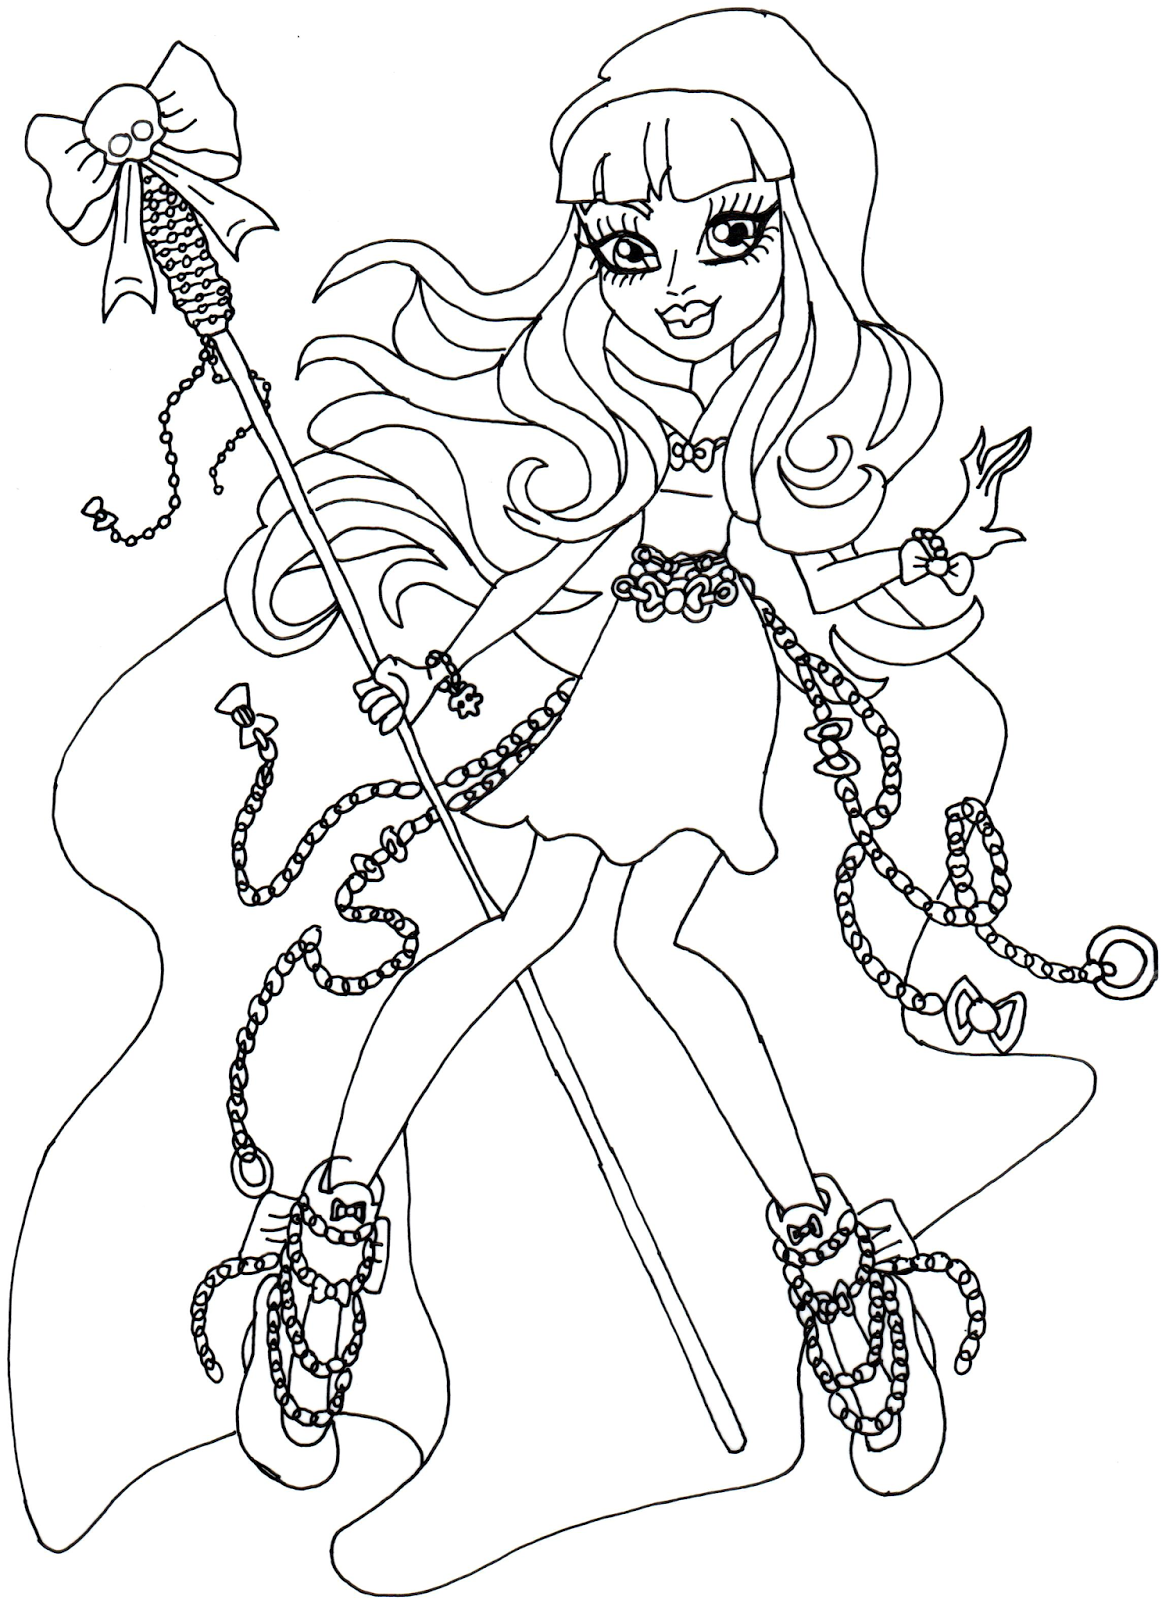 Free Printable Monster High Coloring Pages River Styxx Monster High Coloring Page